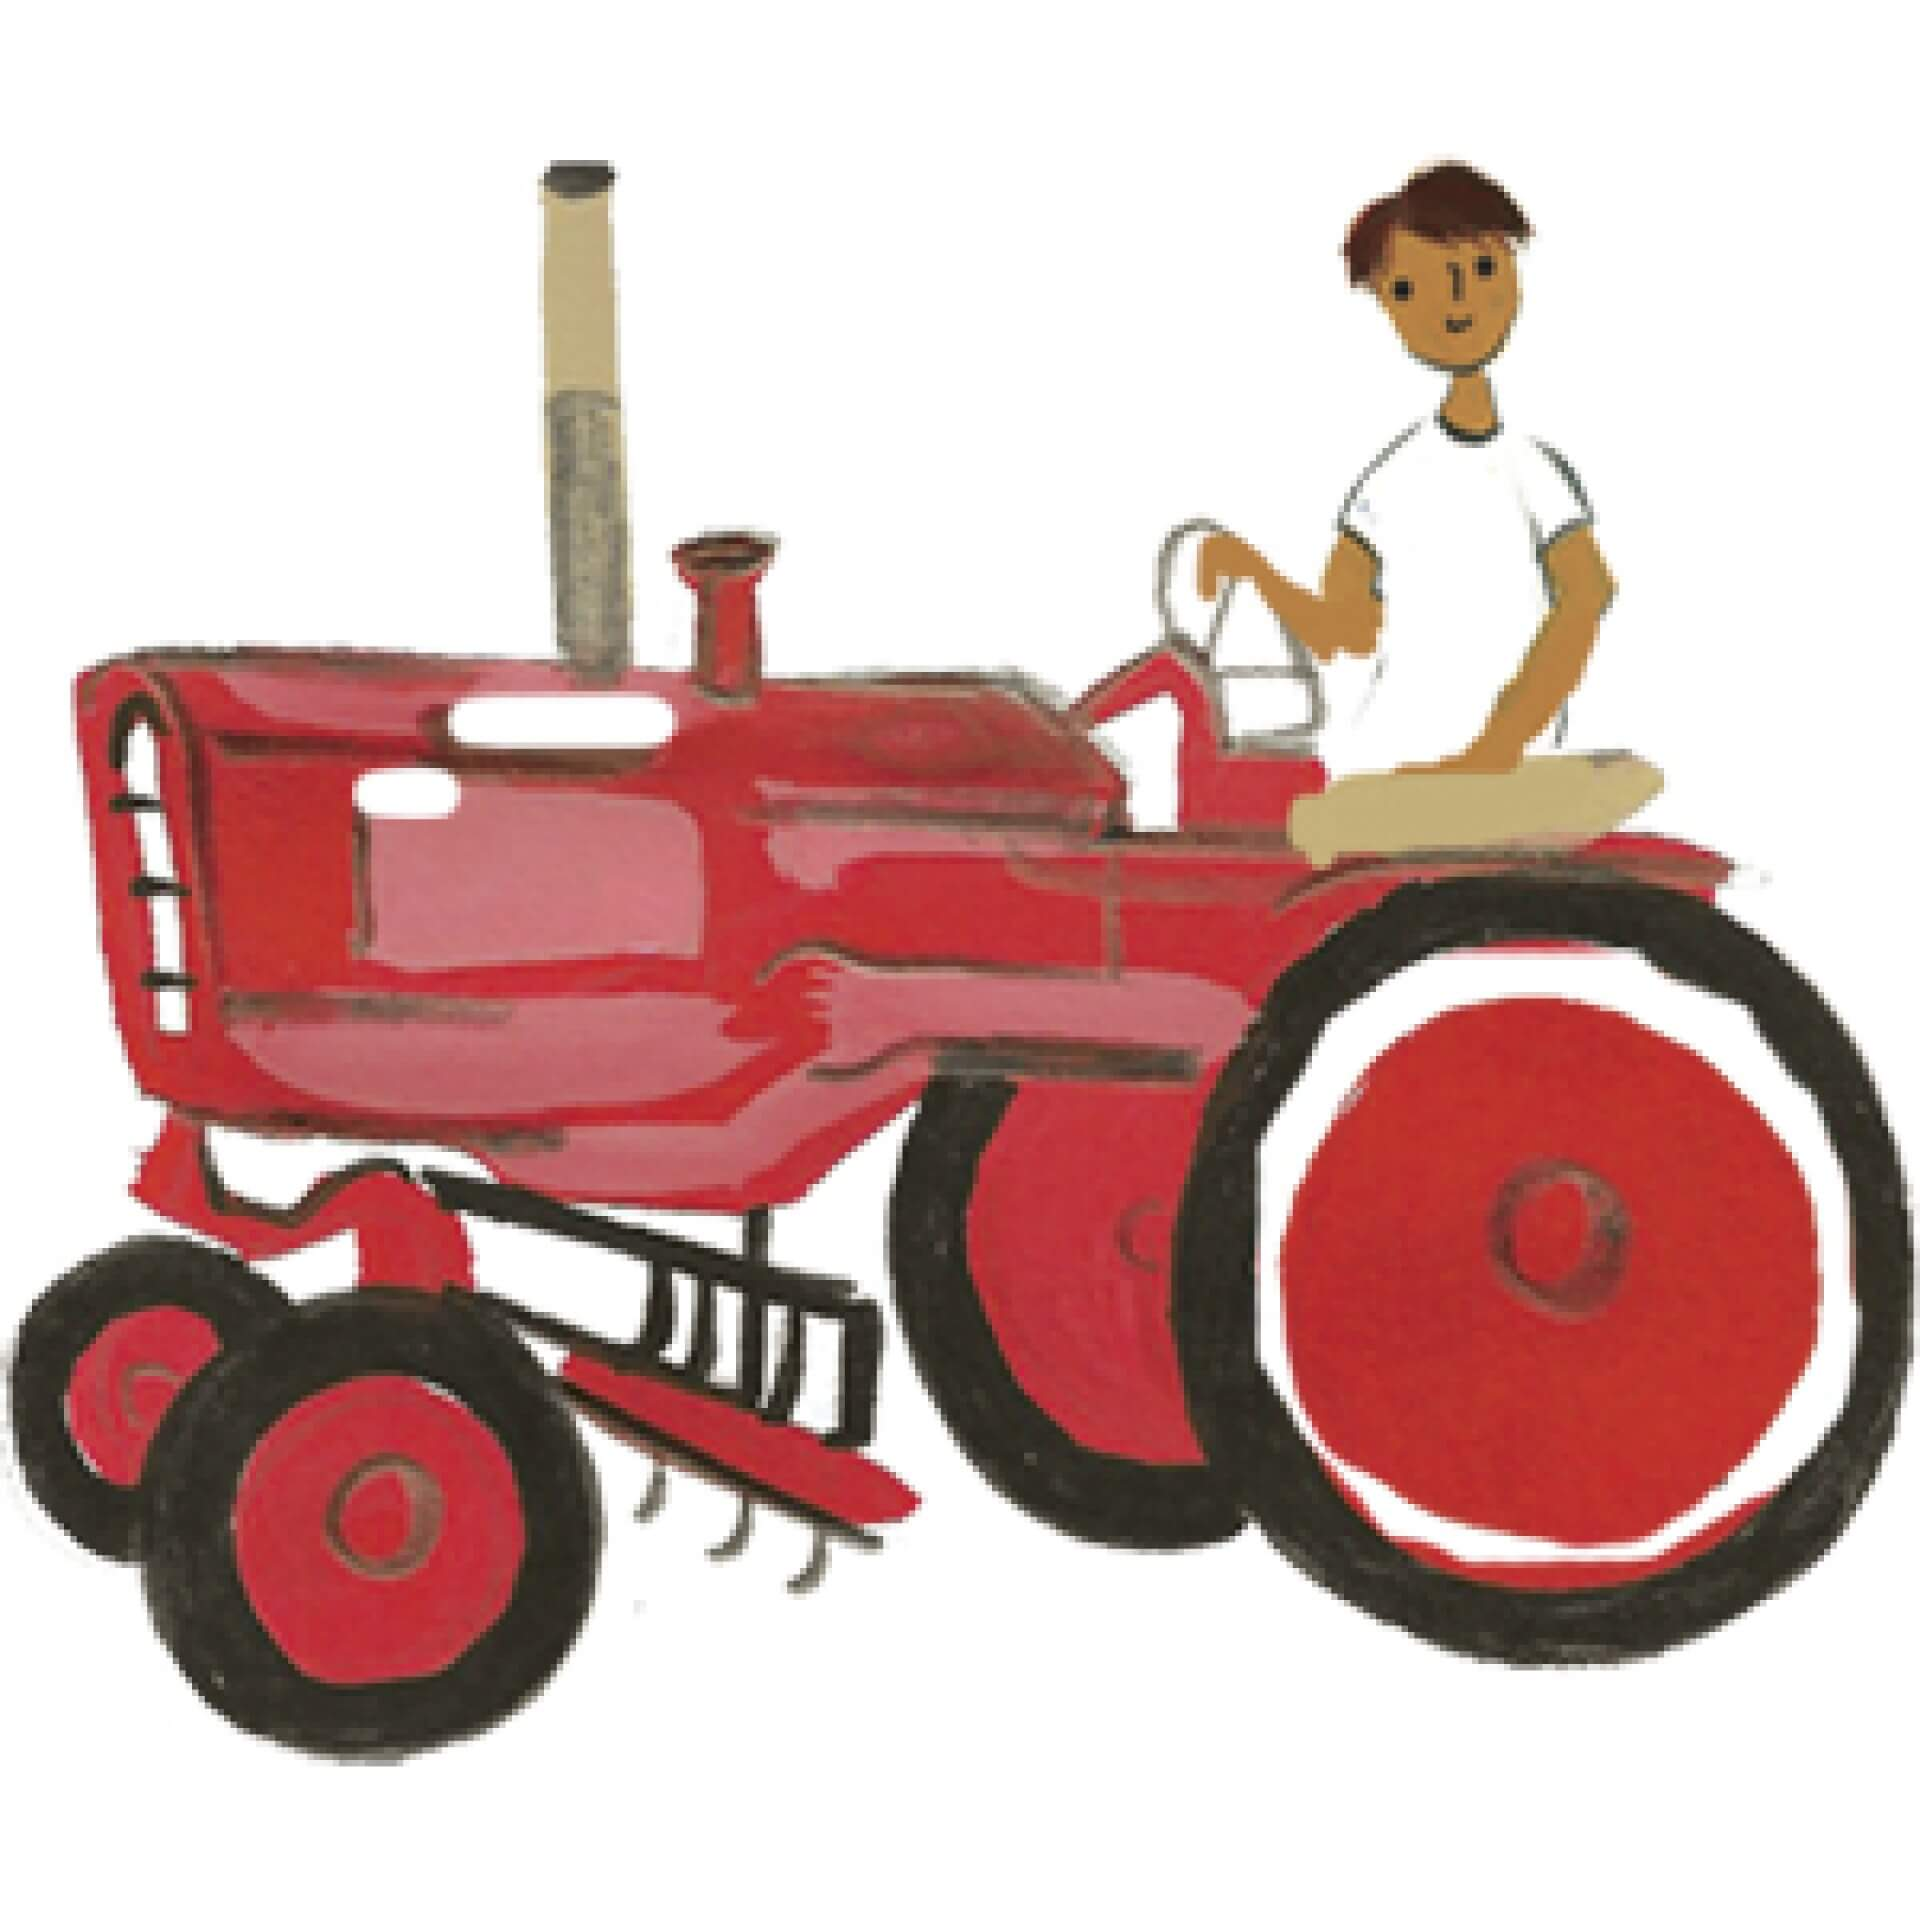 watercolor of a tractor